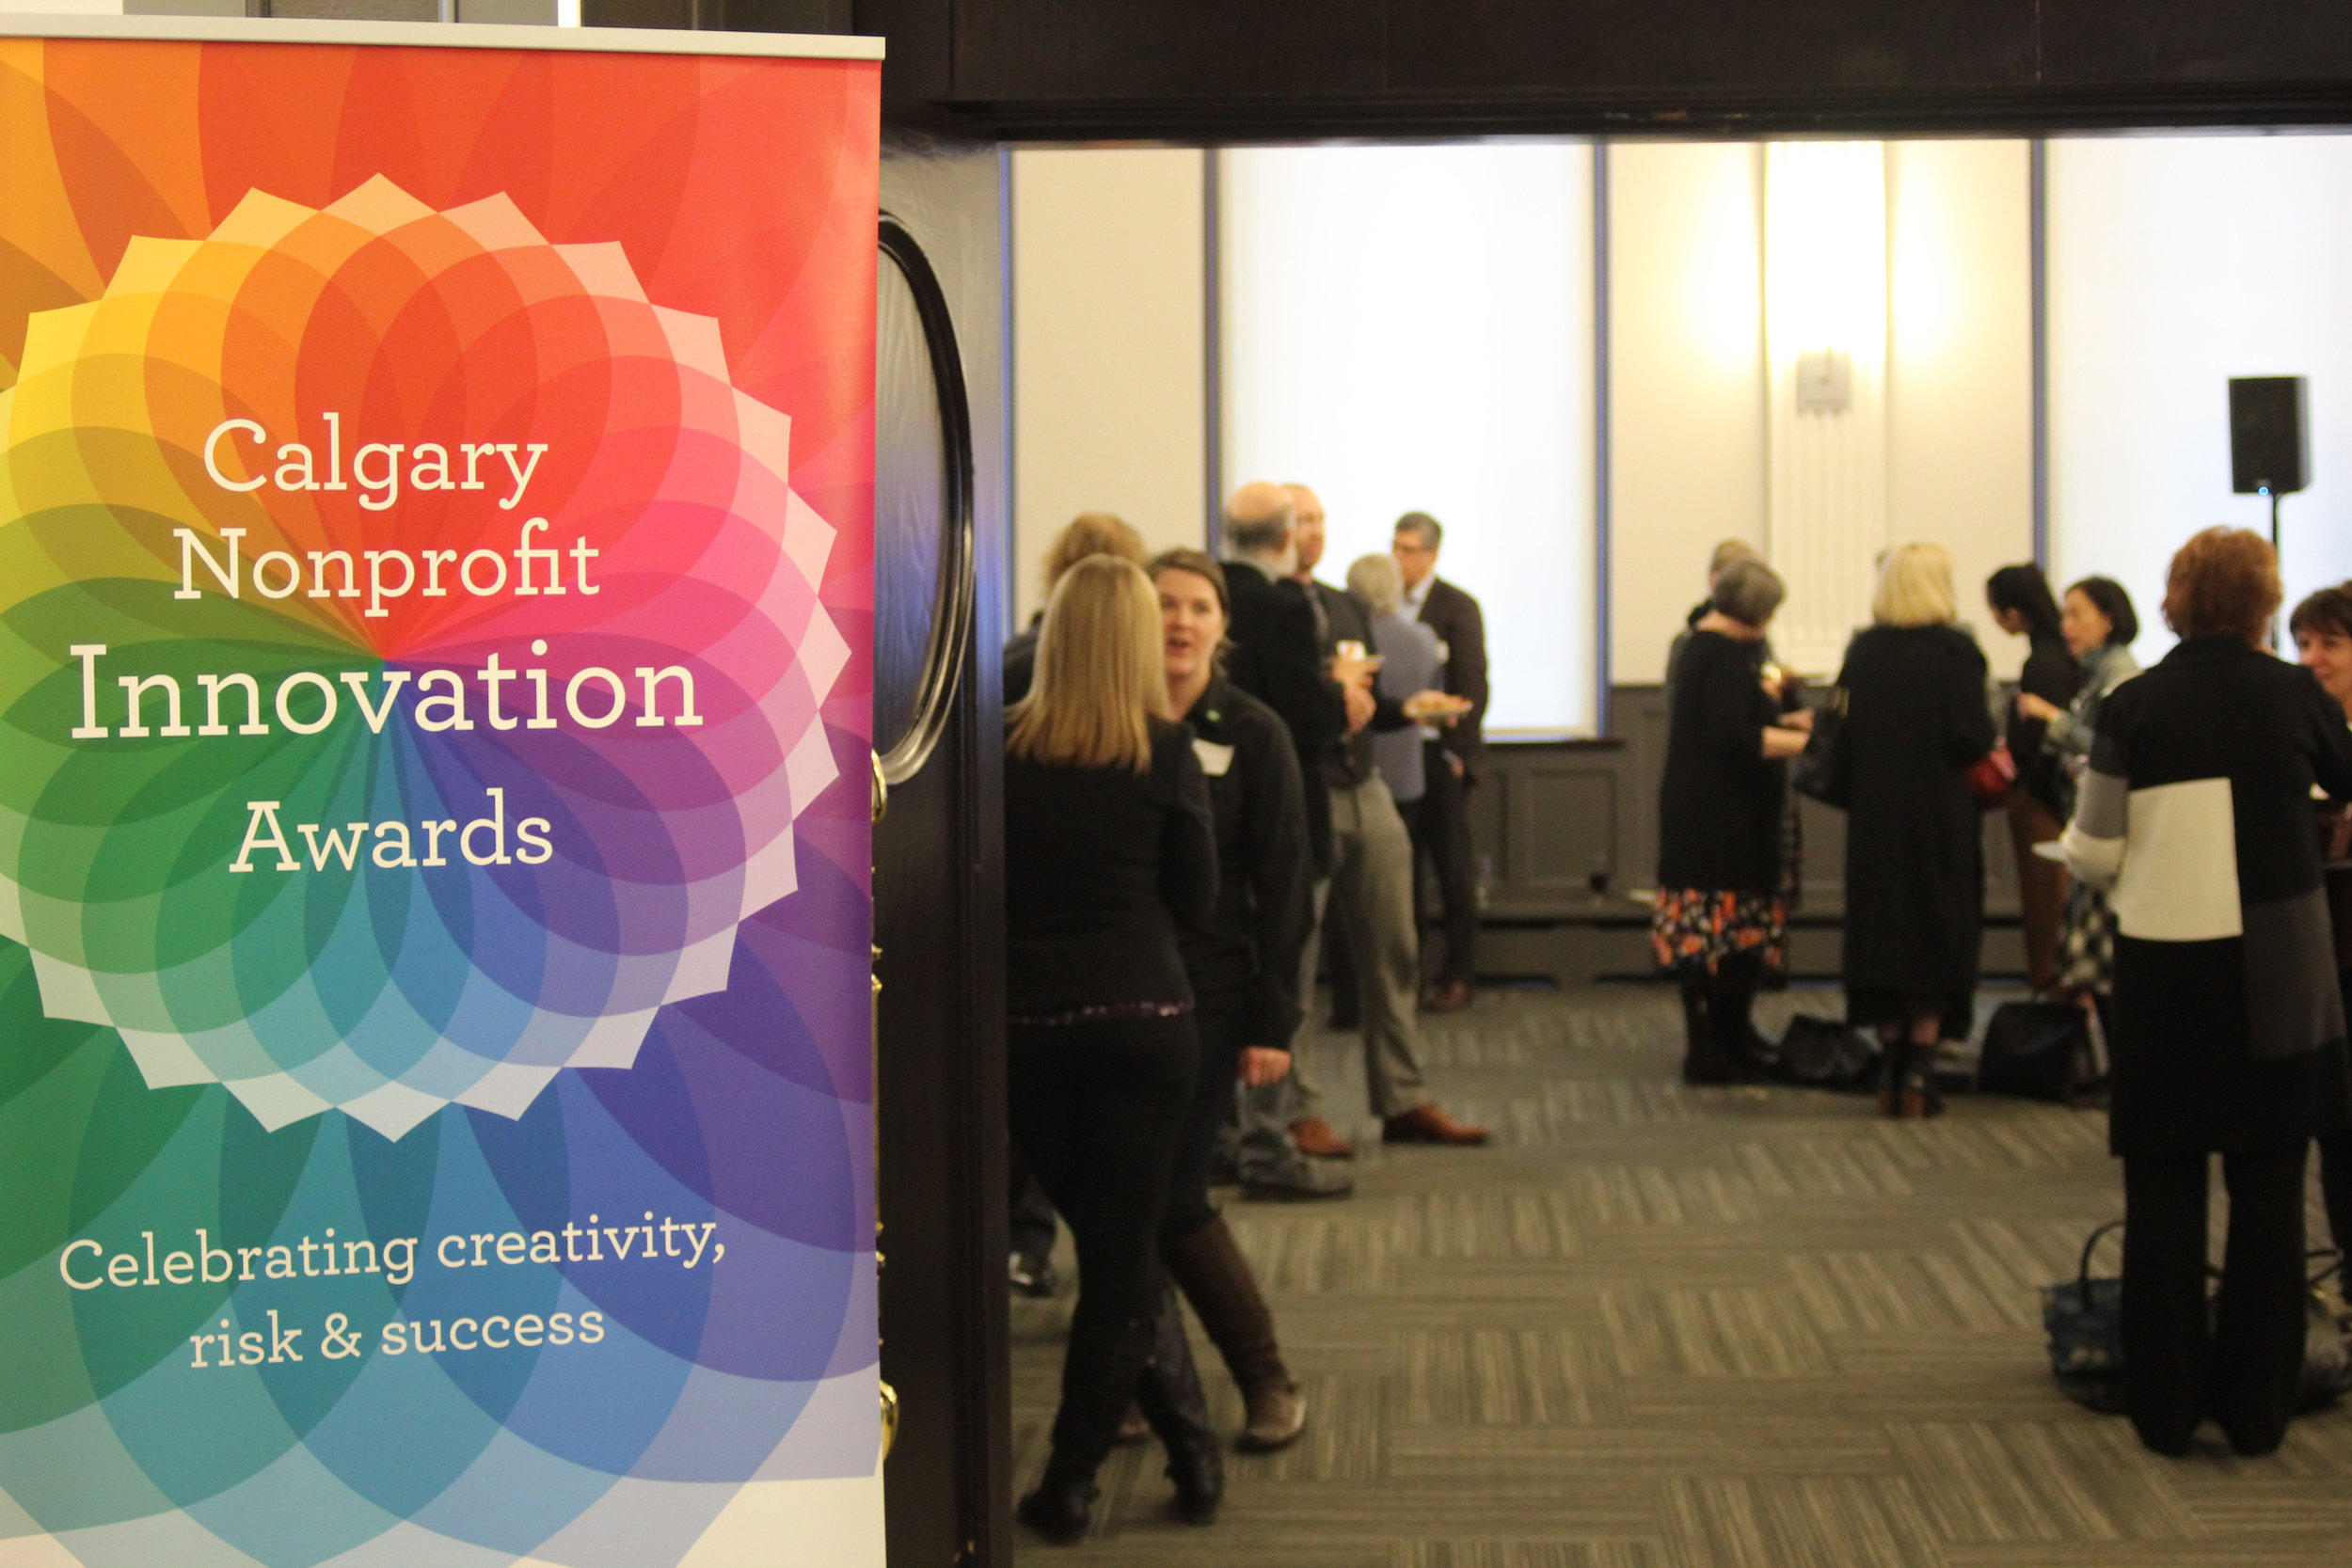 Nonprofit Innovation Awards - JOIN US OCTOBER 3! - Connect with and learn from the local visionary nonprofit organizations celebrated each year at the annual Nonprofit Innovation Awards. Registration opening soon.